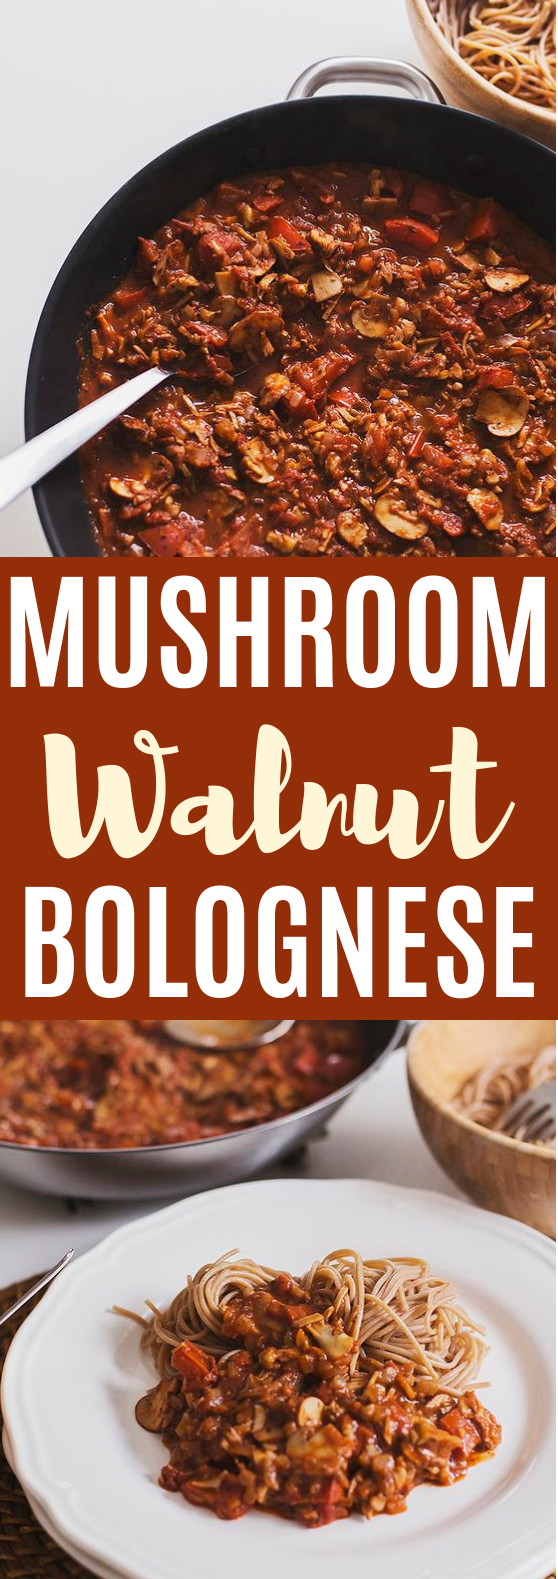 Mushroom & Walnut Spicy #vegan #italianfood